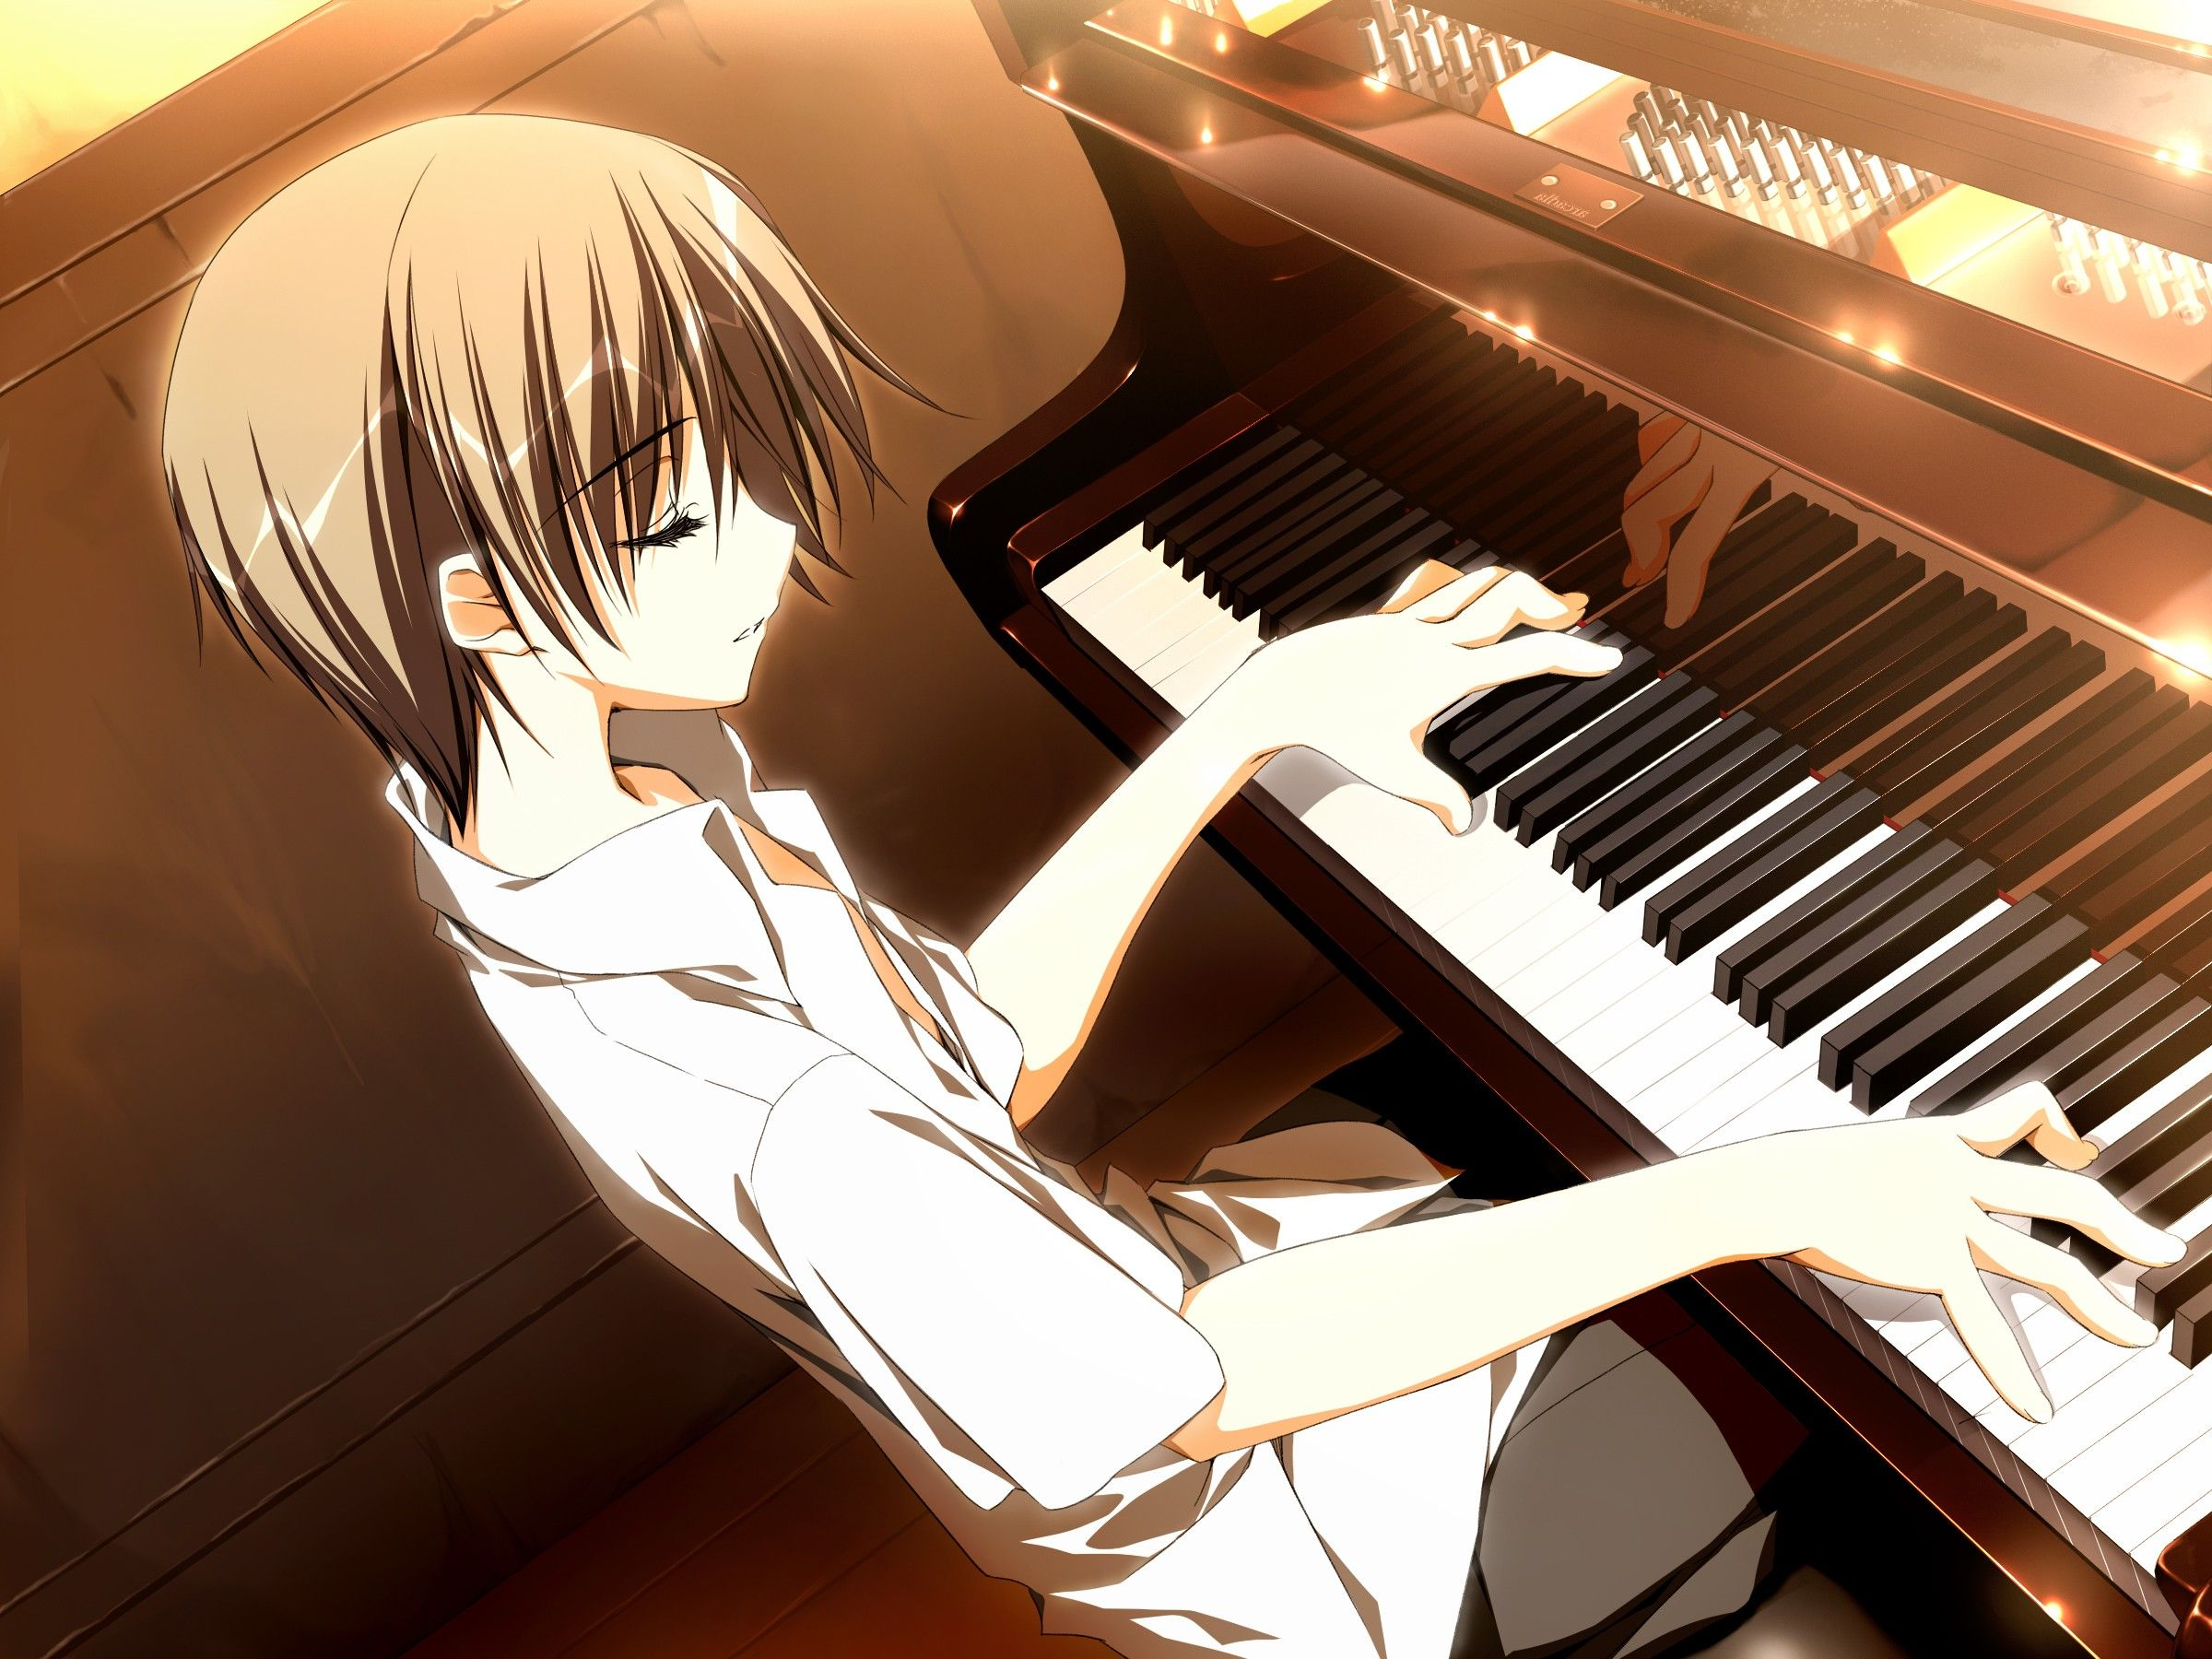 music anime wallpaper guy play piano Artes Pinterest